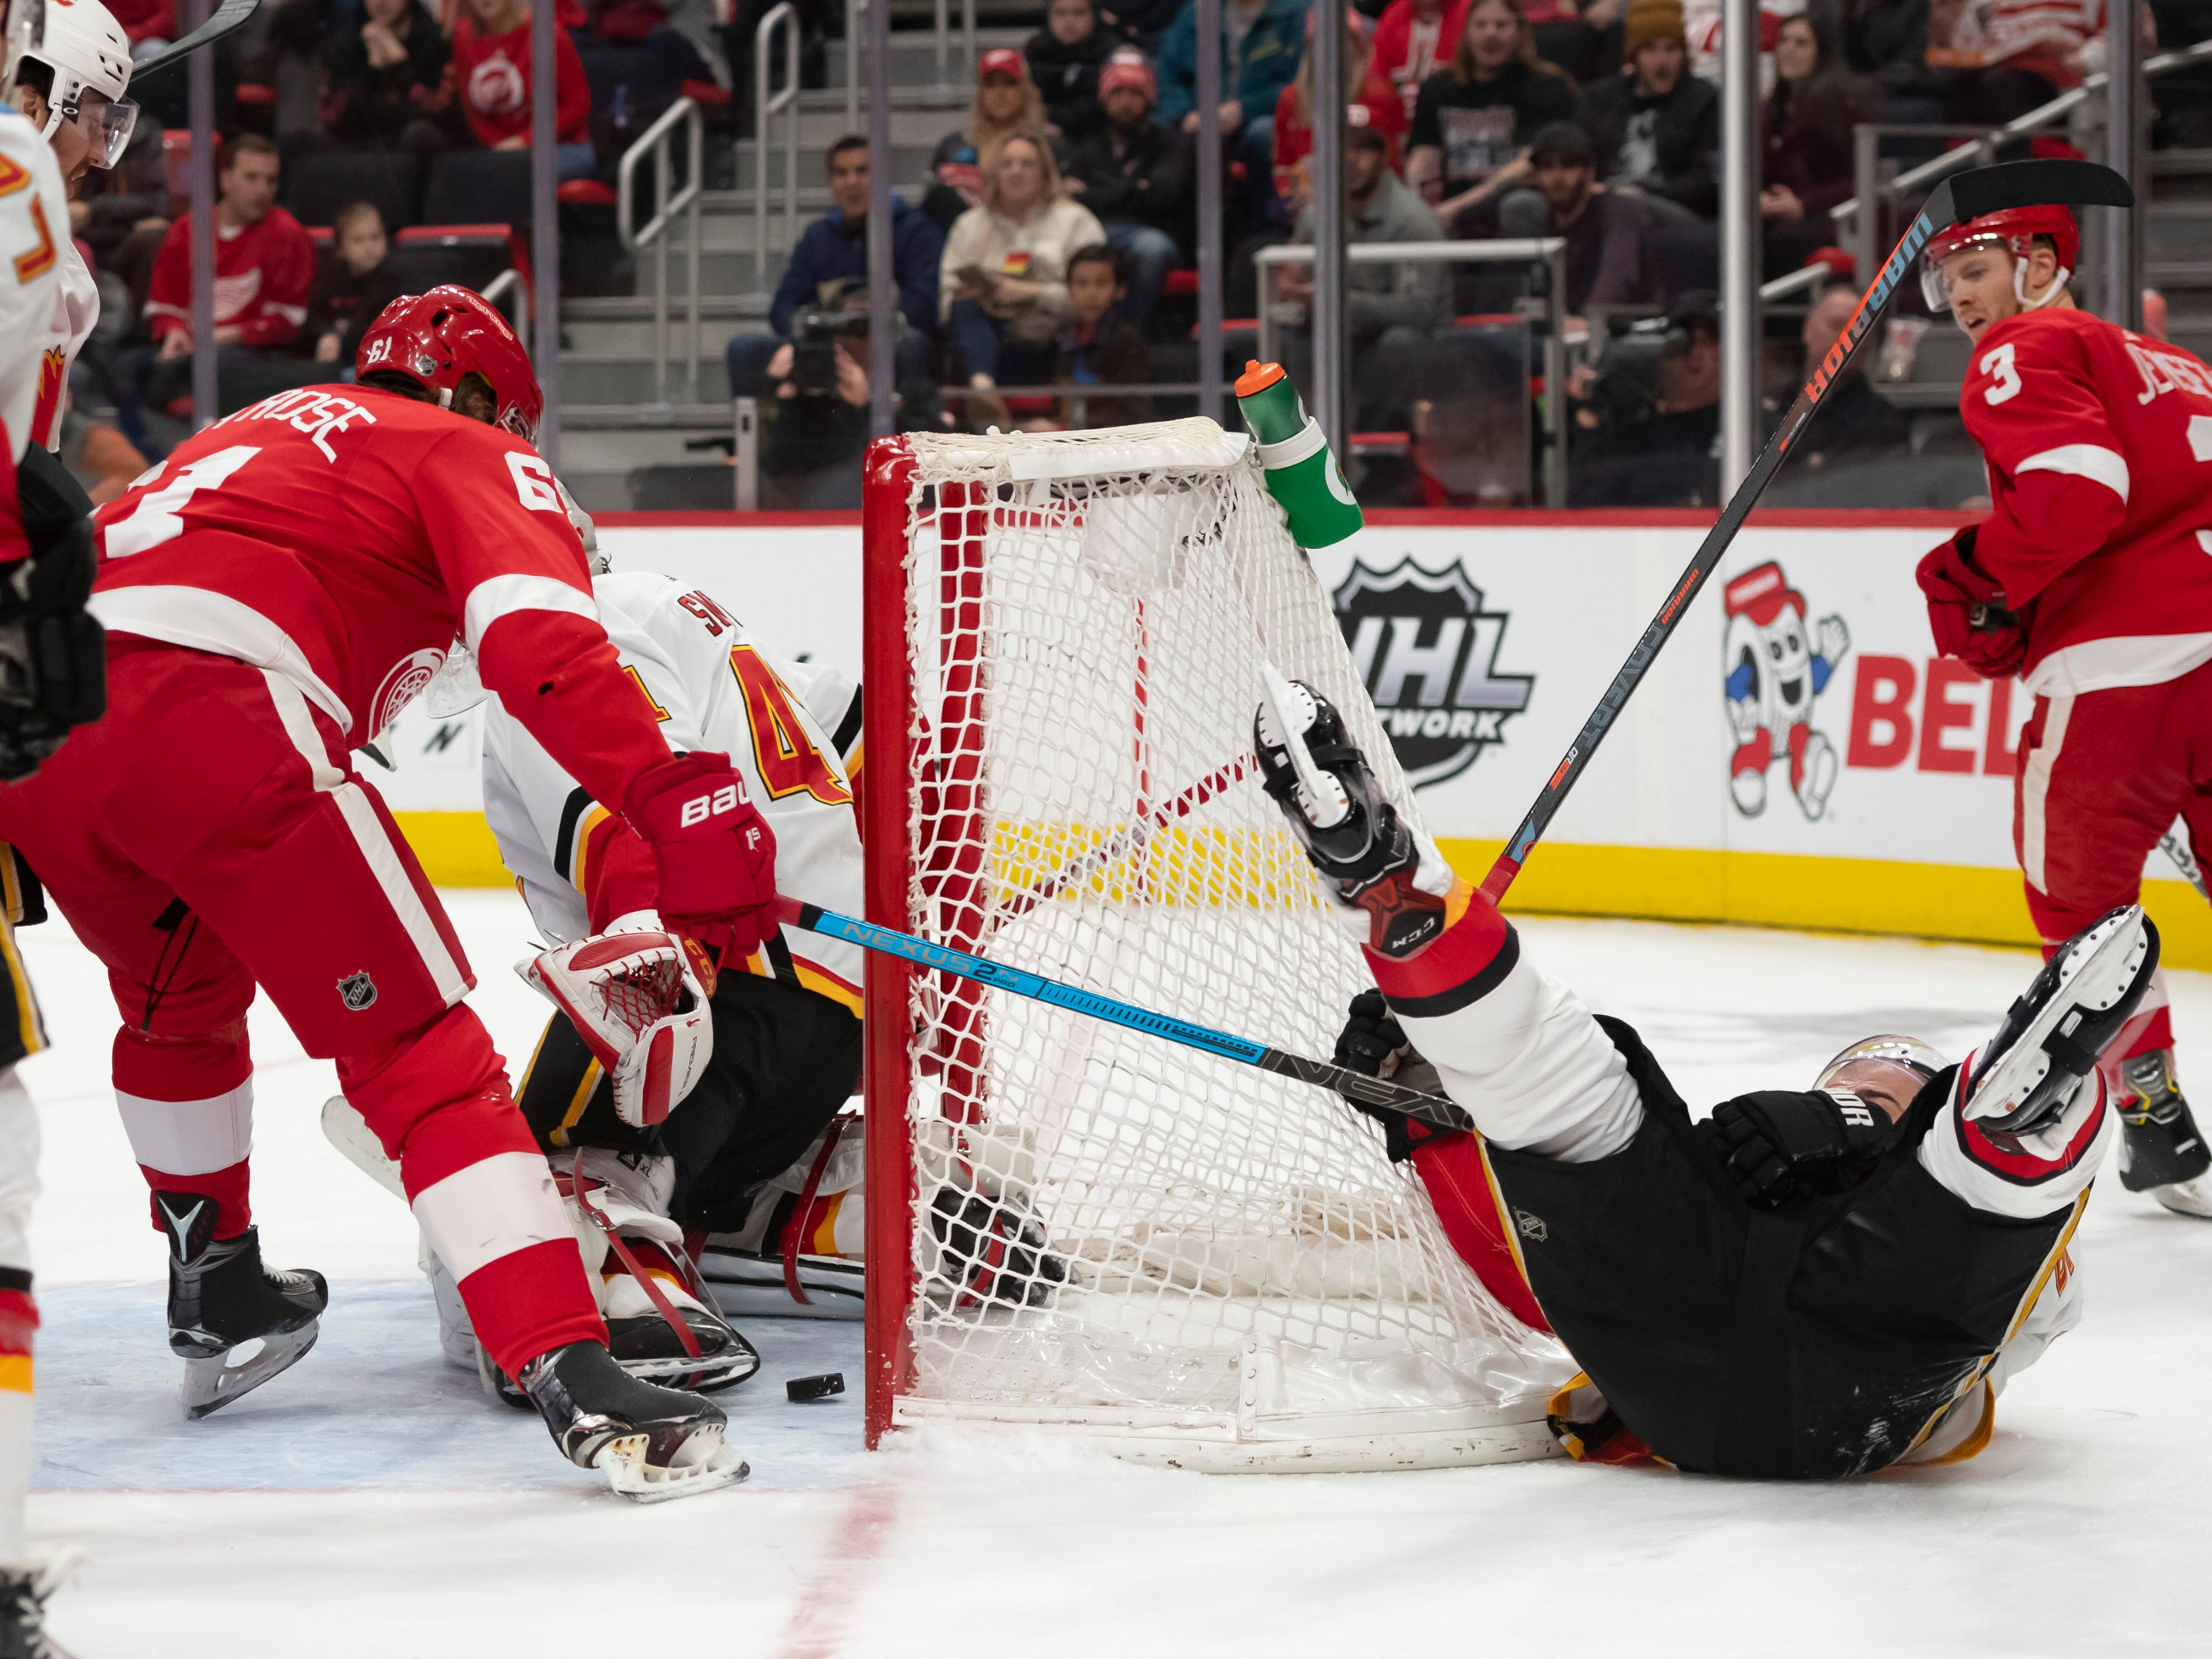 Detroit left wing Jacob De La Rose gets the puck past Calgary goaltender Mike Smith for a goal in the first period.